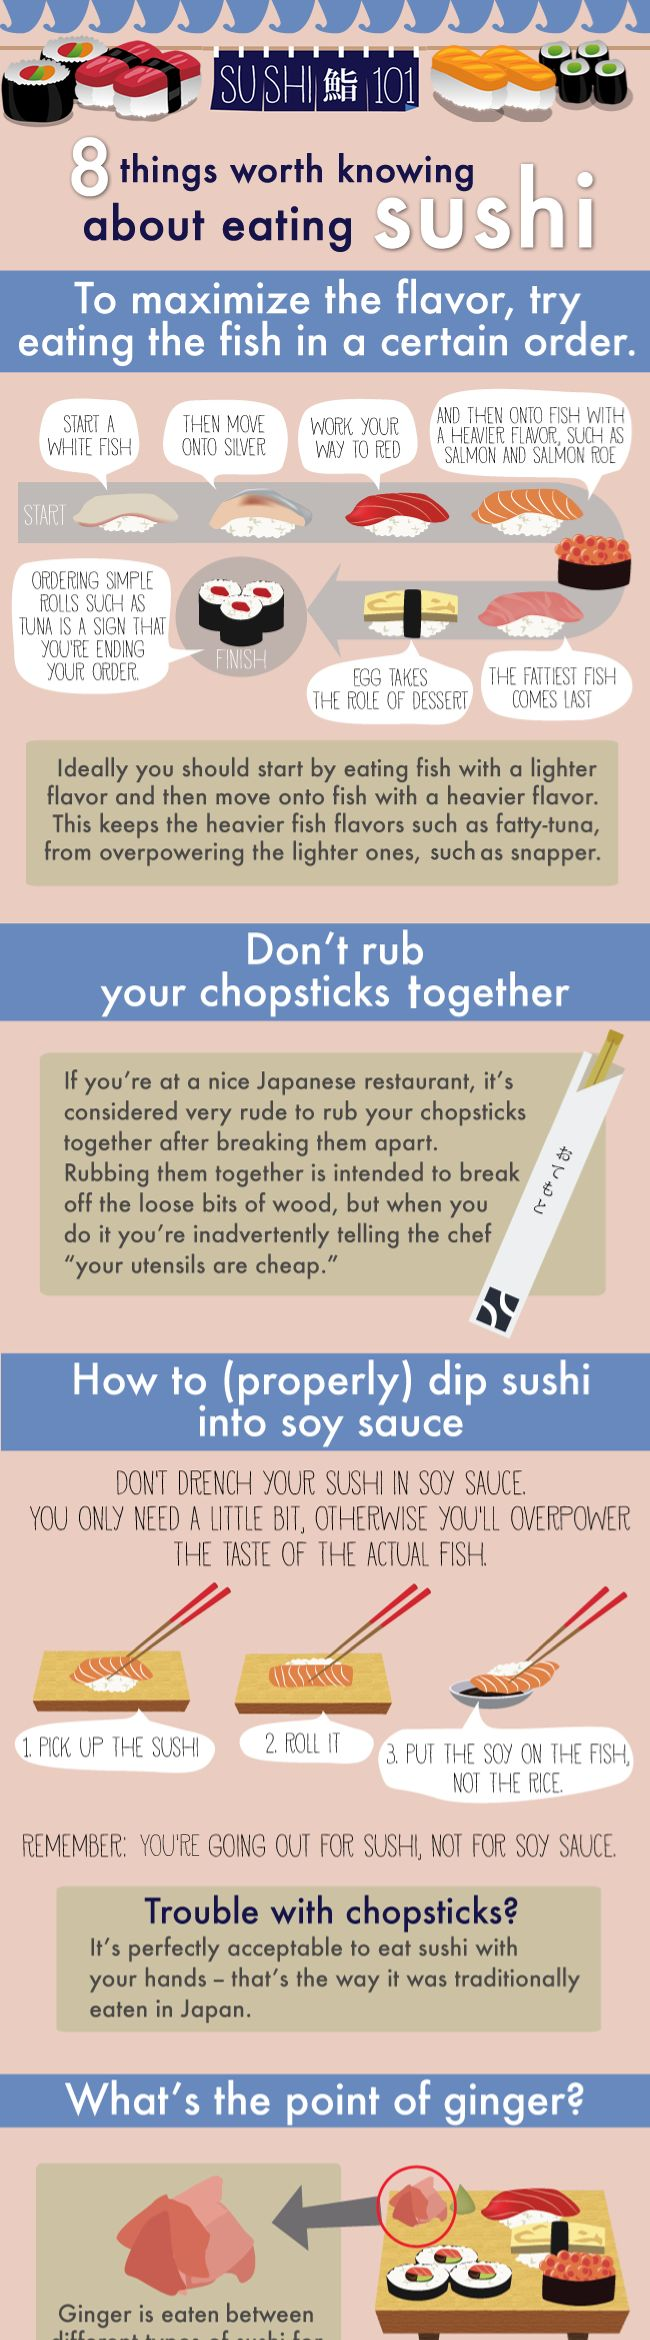 8 Things You Should Know About Eating Sushi